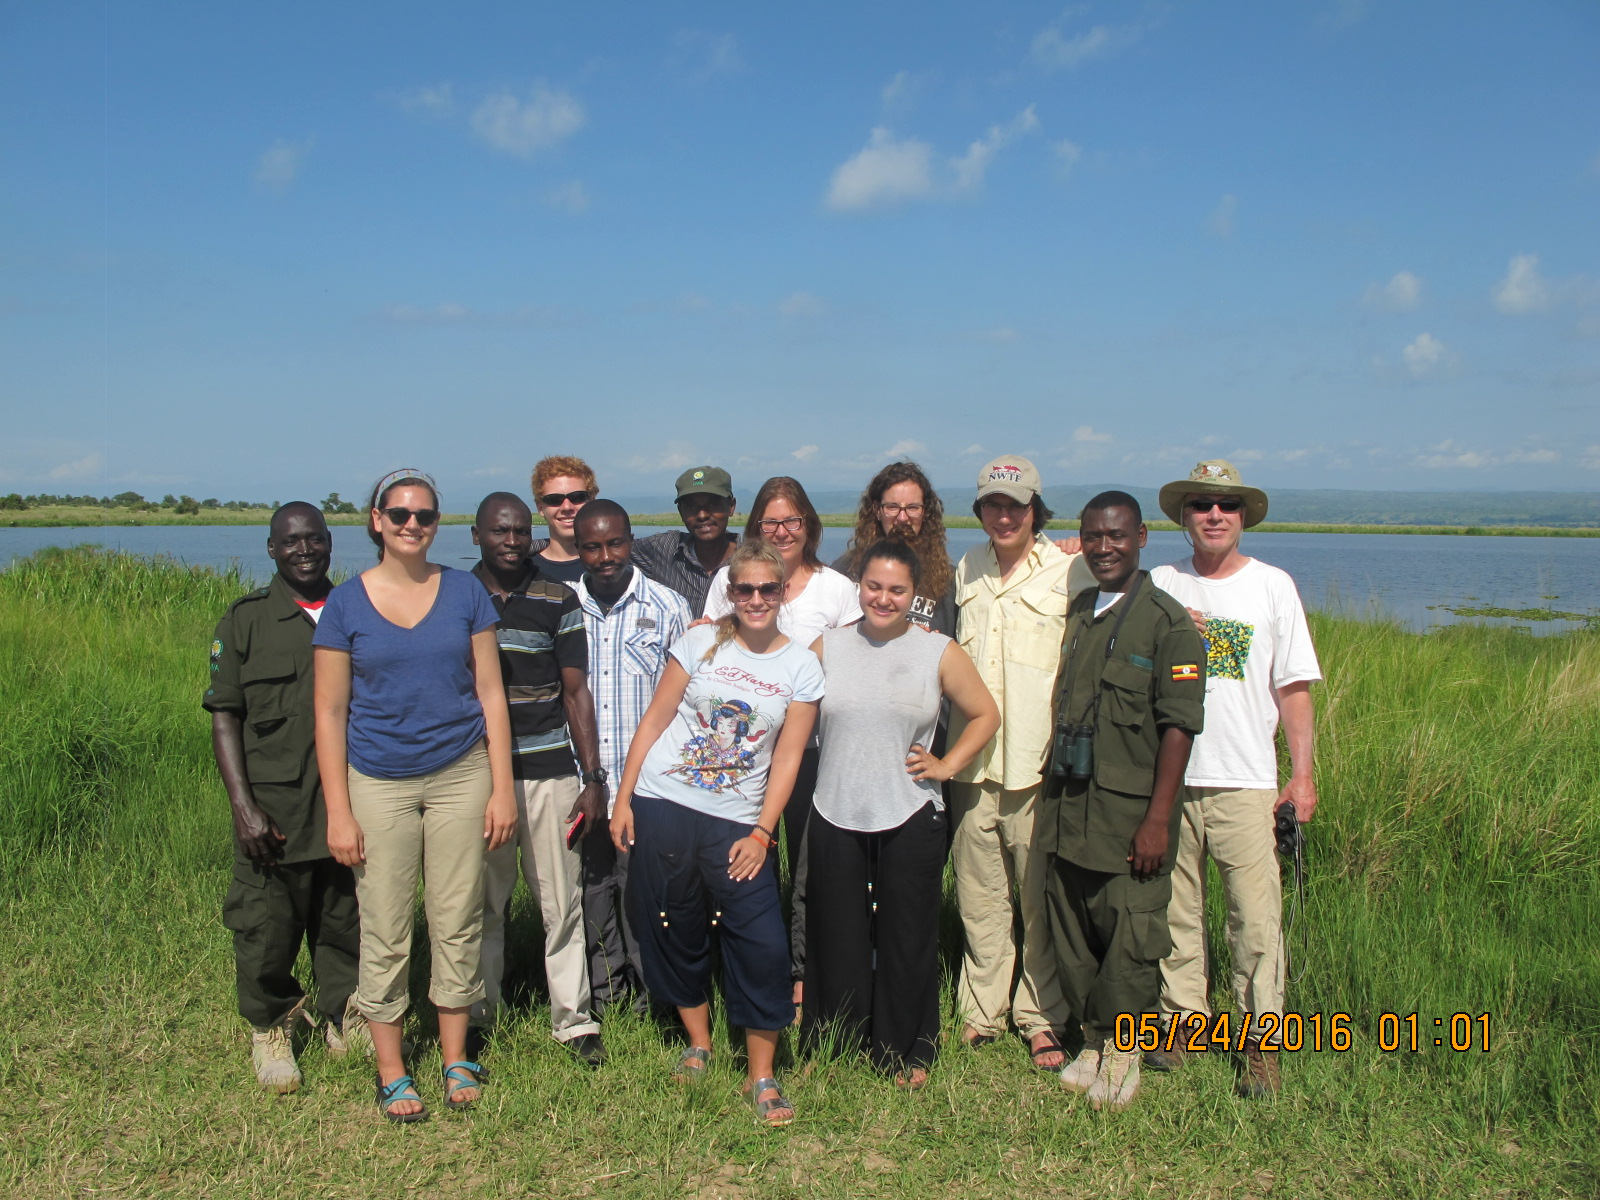 Gender and Human Rights field study class (June 2016) with Forestry Professor Ken Smith, and park rangers on Safari at Murchison Falls National Park